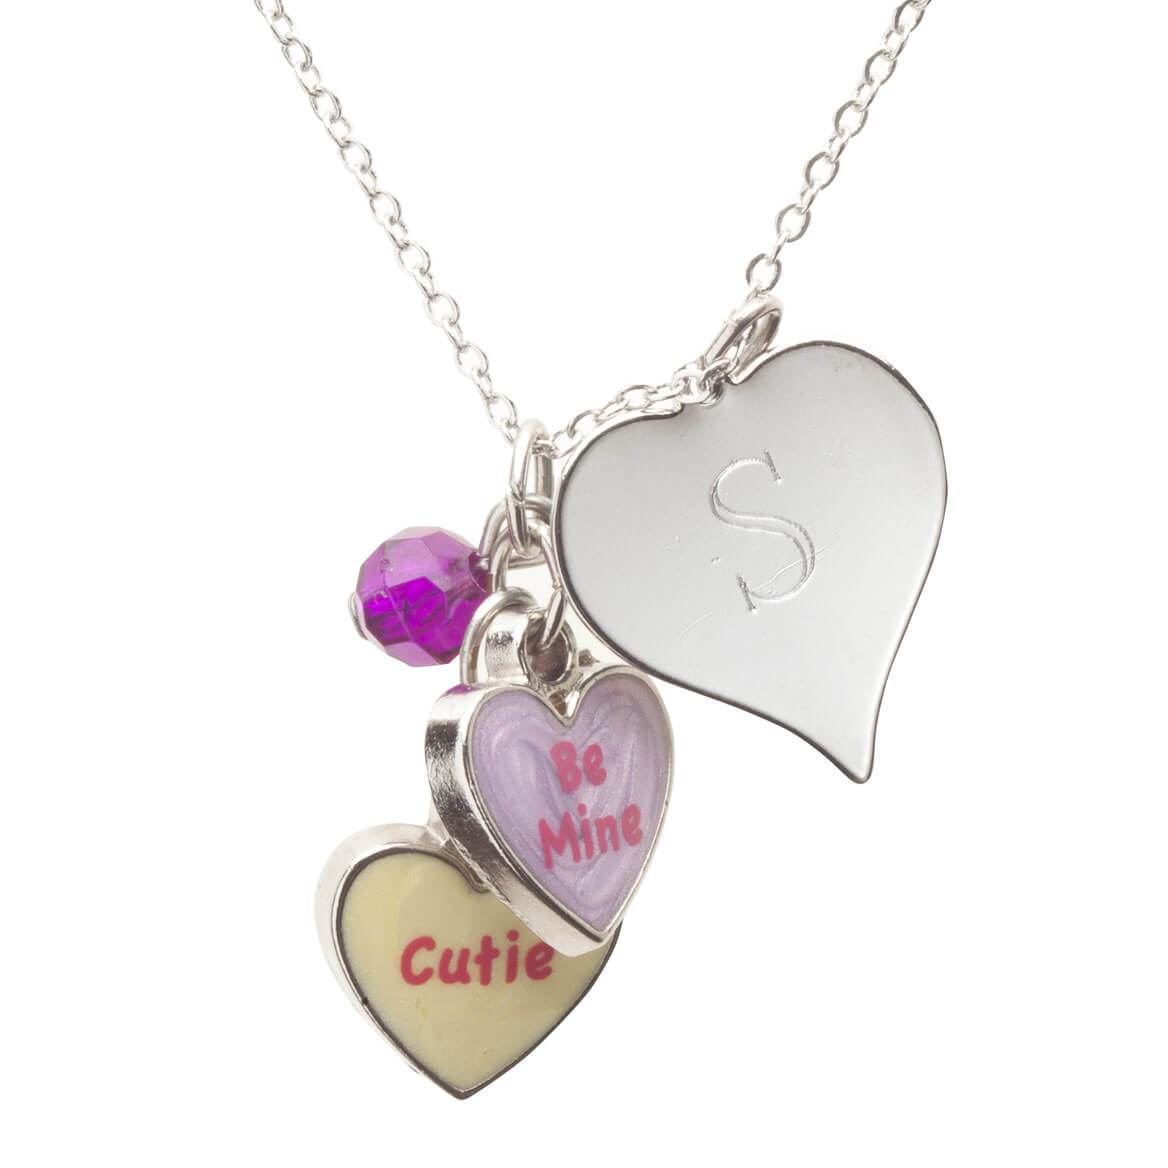 Personalized Valentine's Day Cutie Necklace